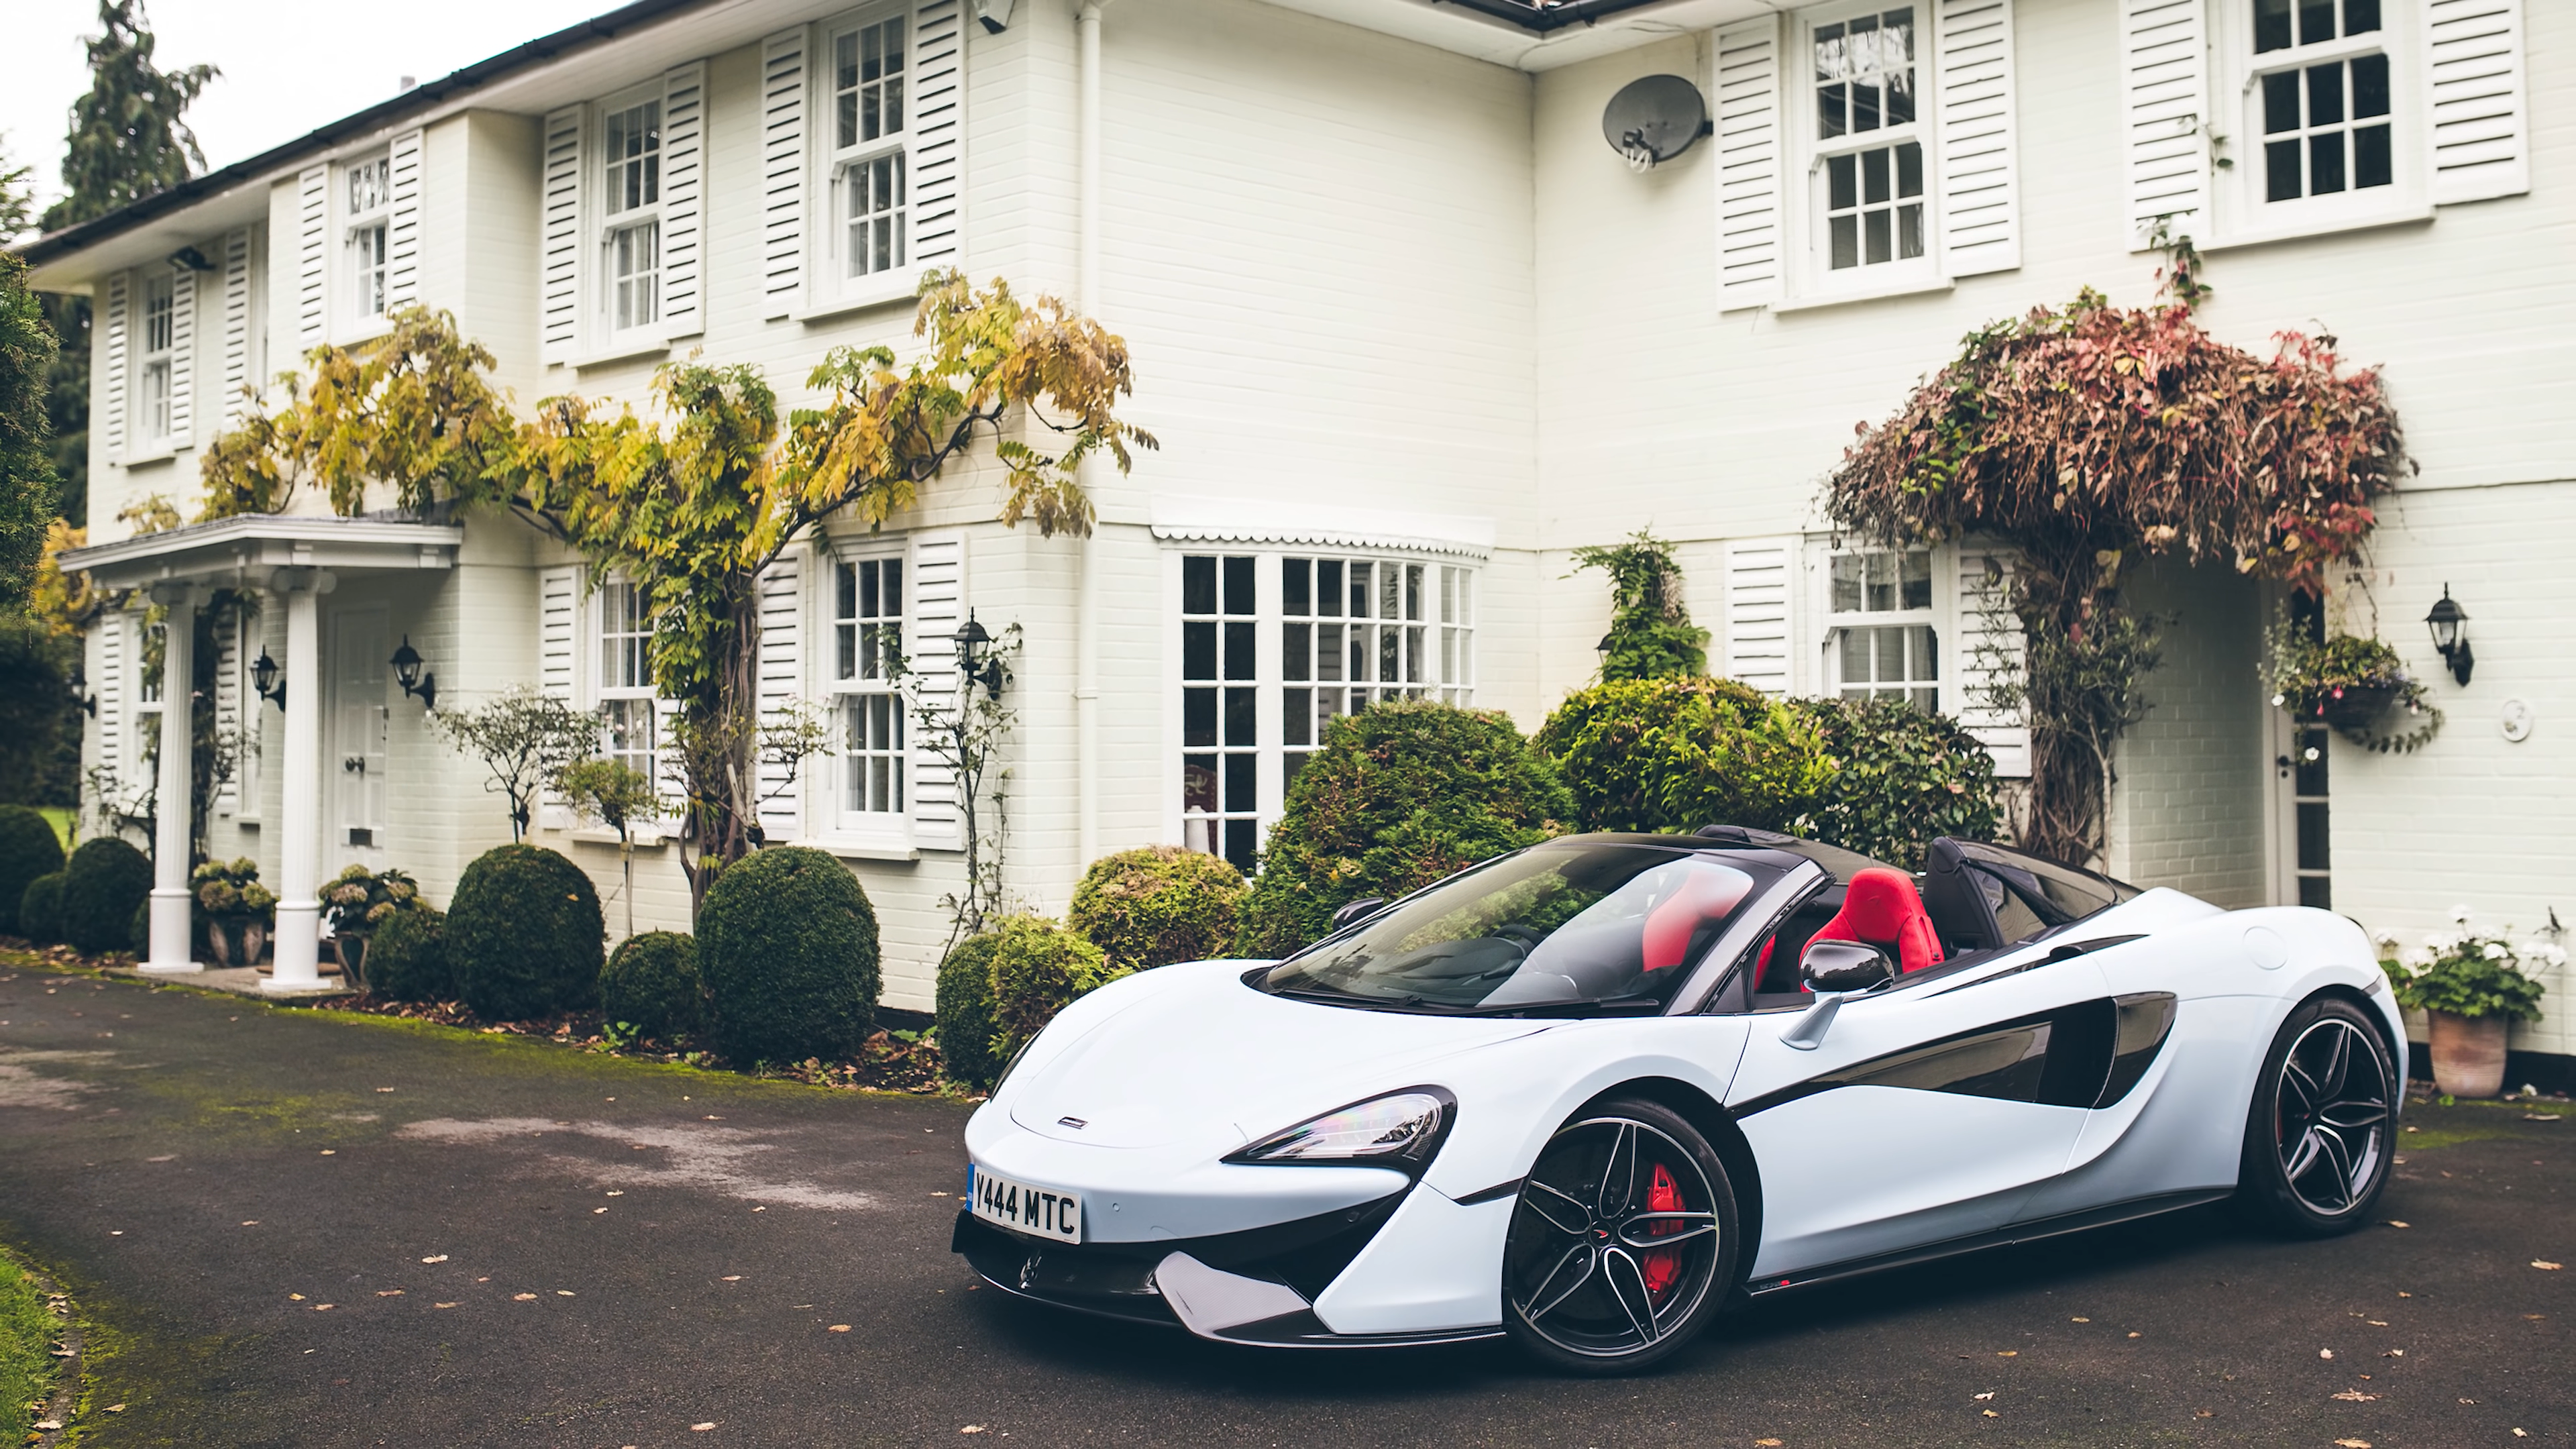 General 3840x2160 McLaren white Wealth luxury cars luxury sports car Convertible photography